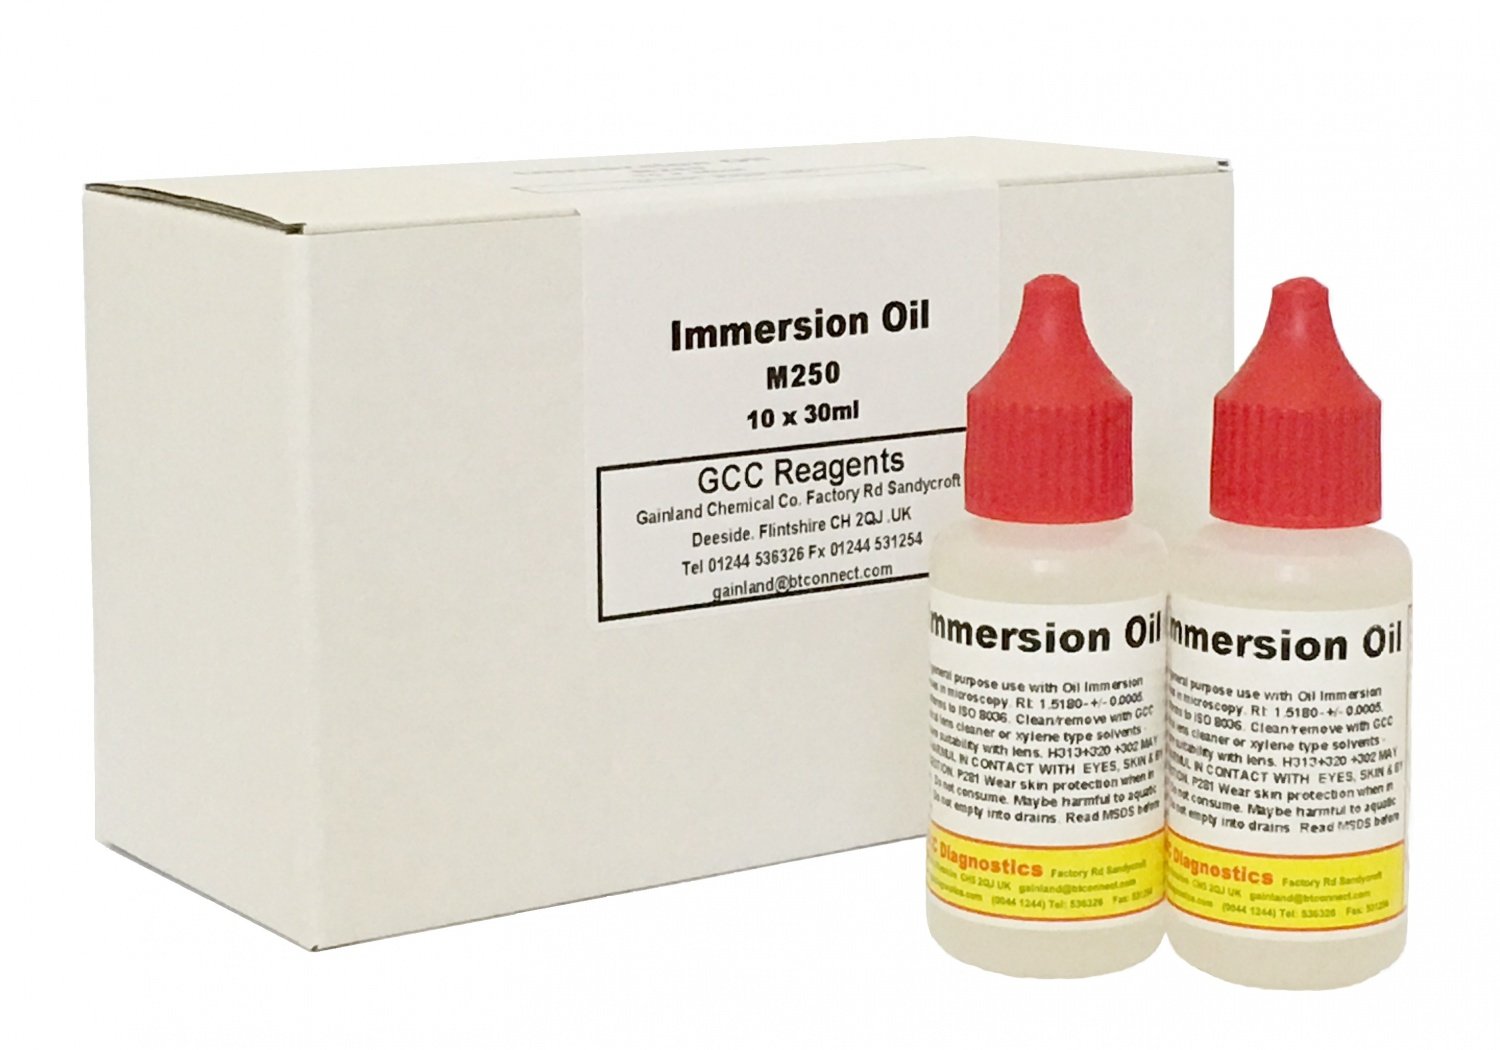 Immersion oil - M250